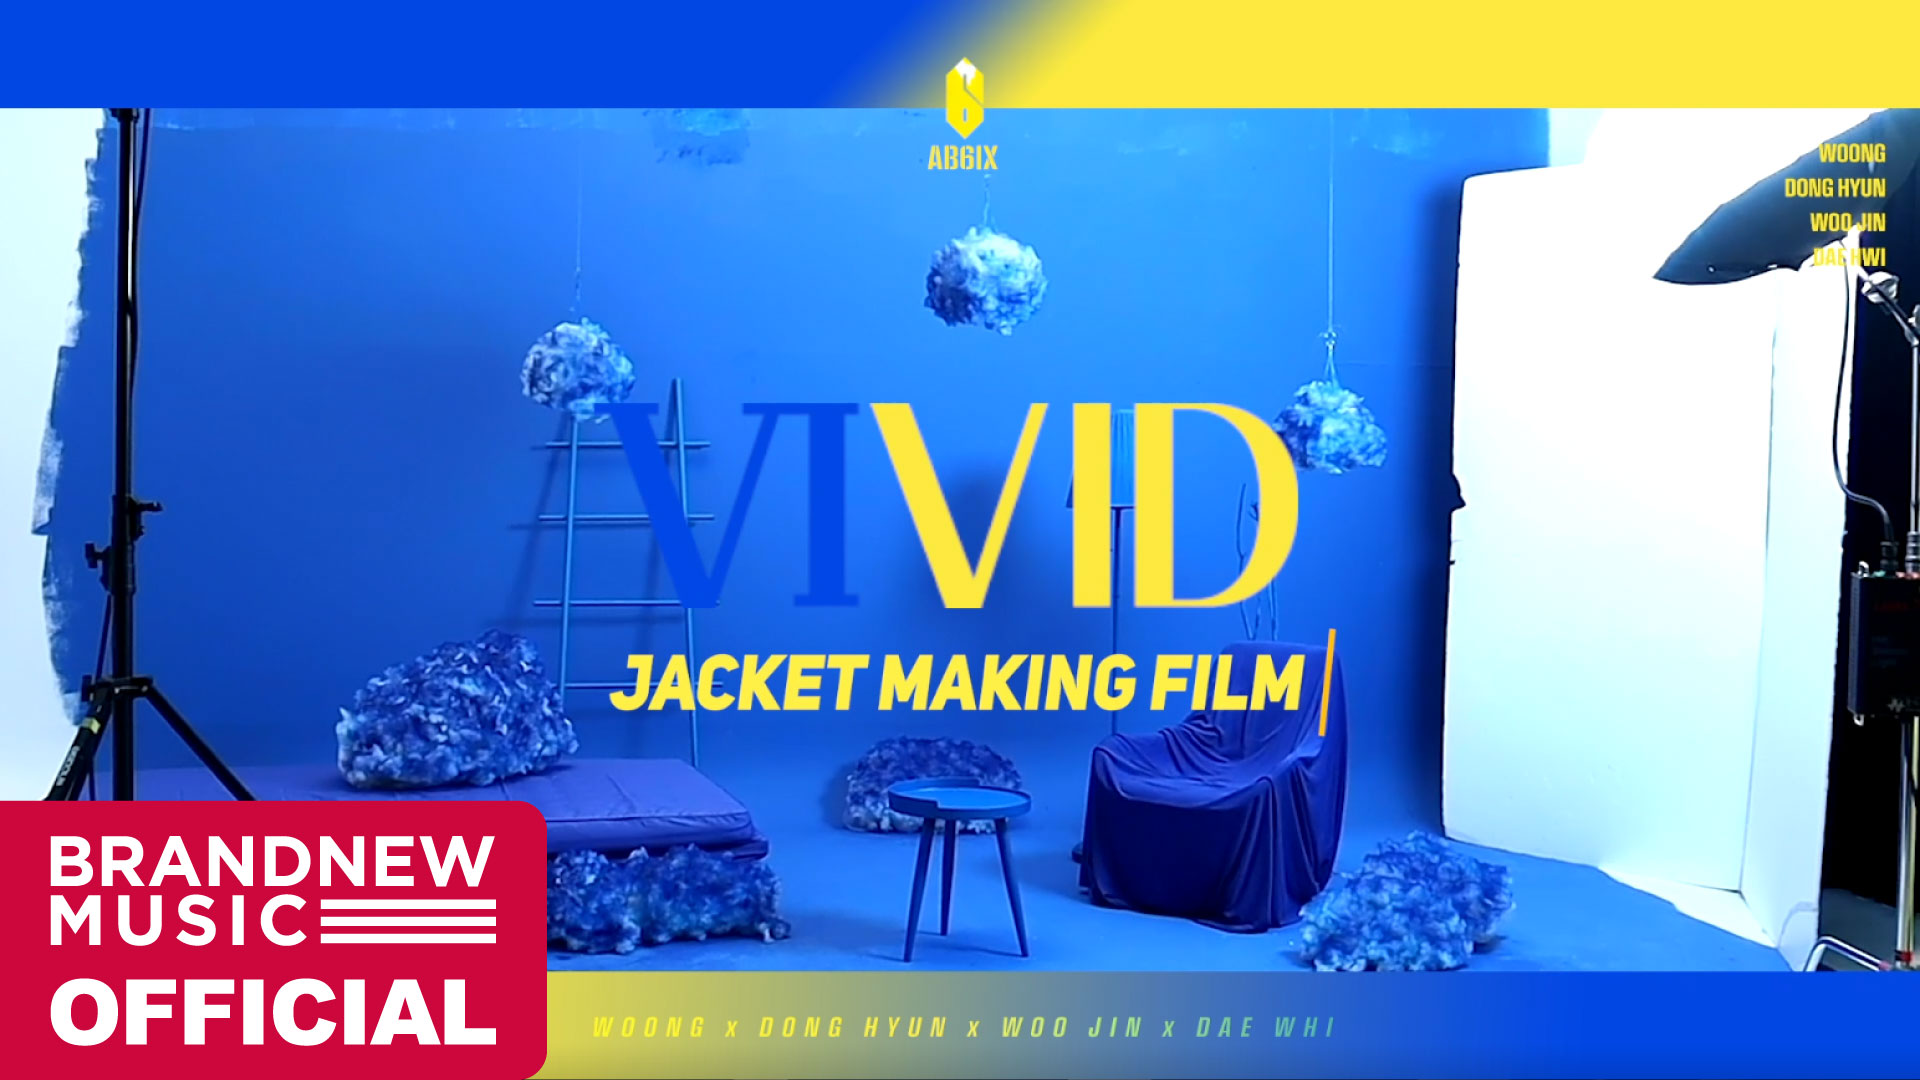 AB6IX (에이비식스) 2ND EP 'VIVID' JACKET MAKING FILM